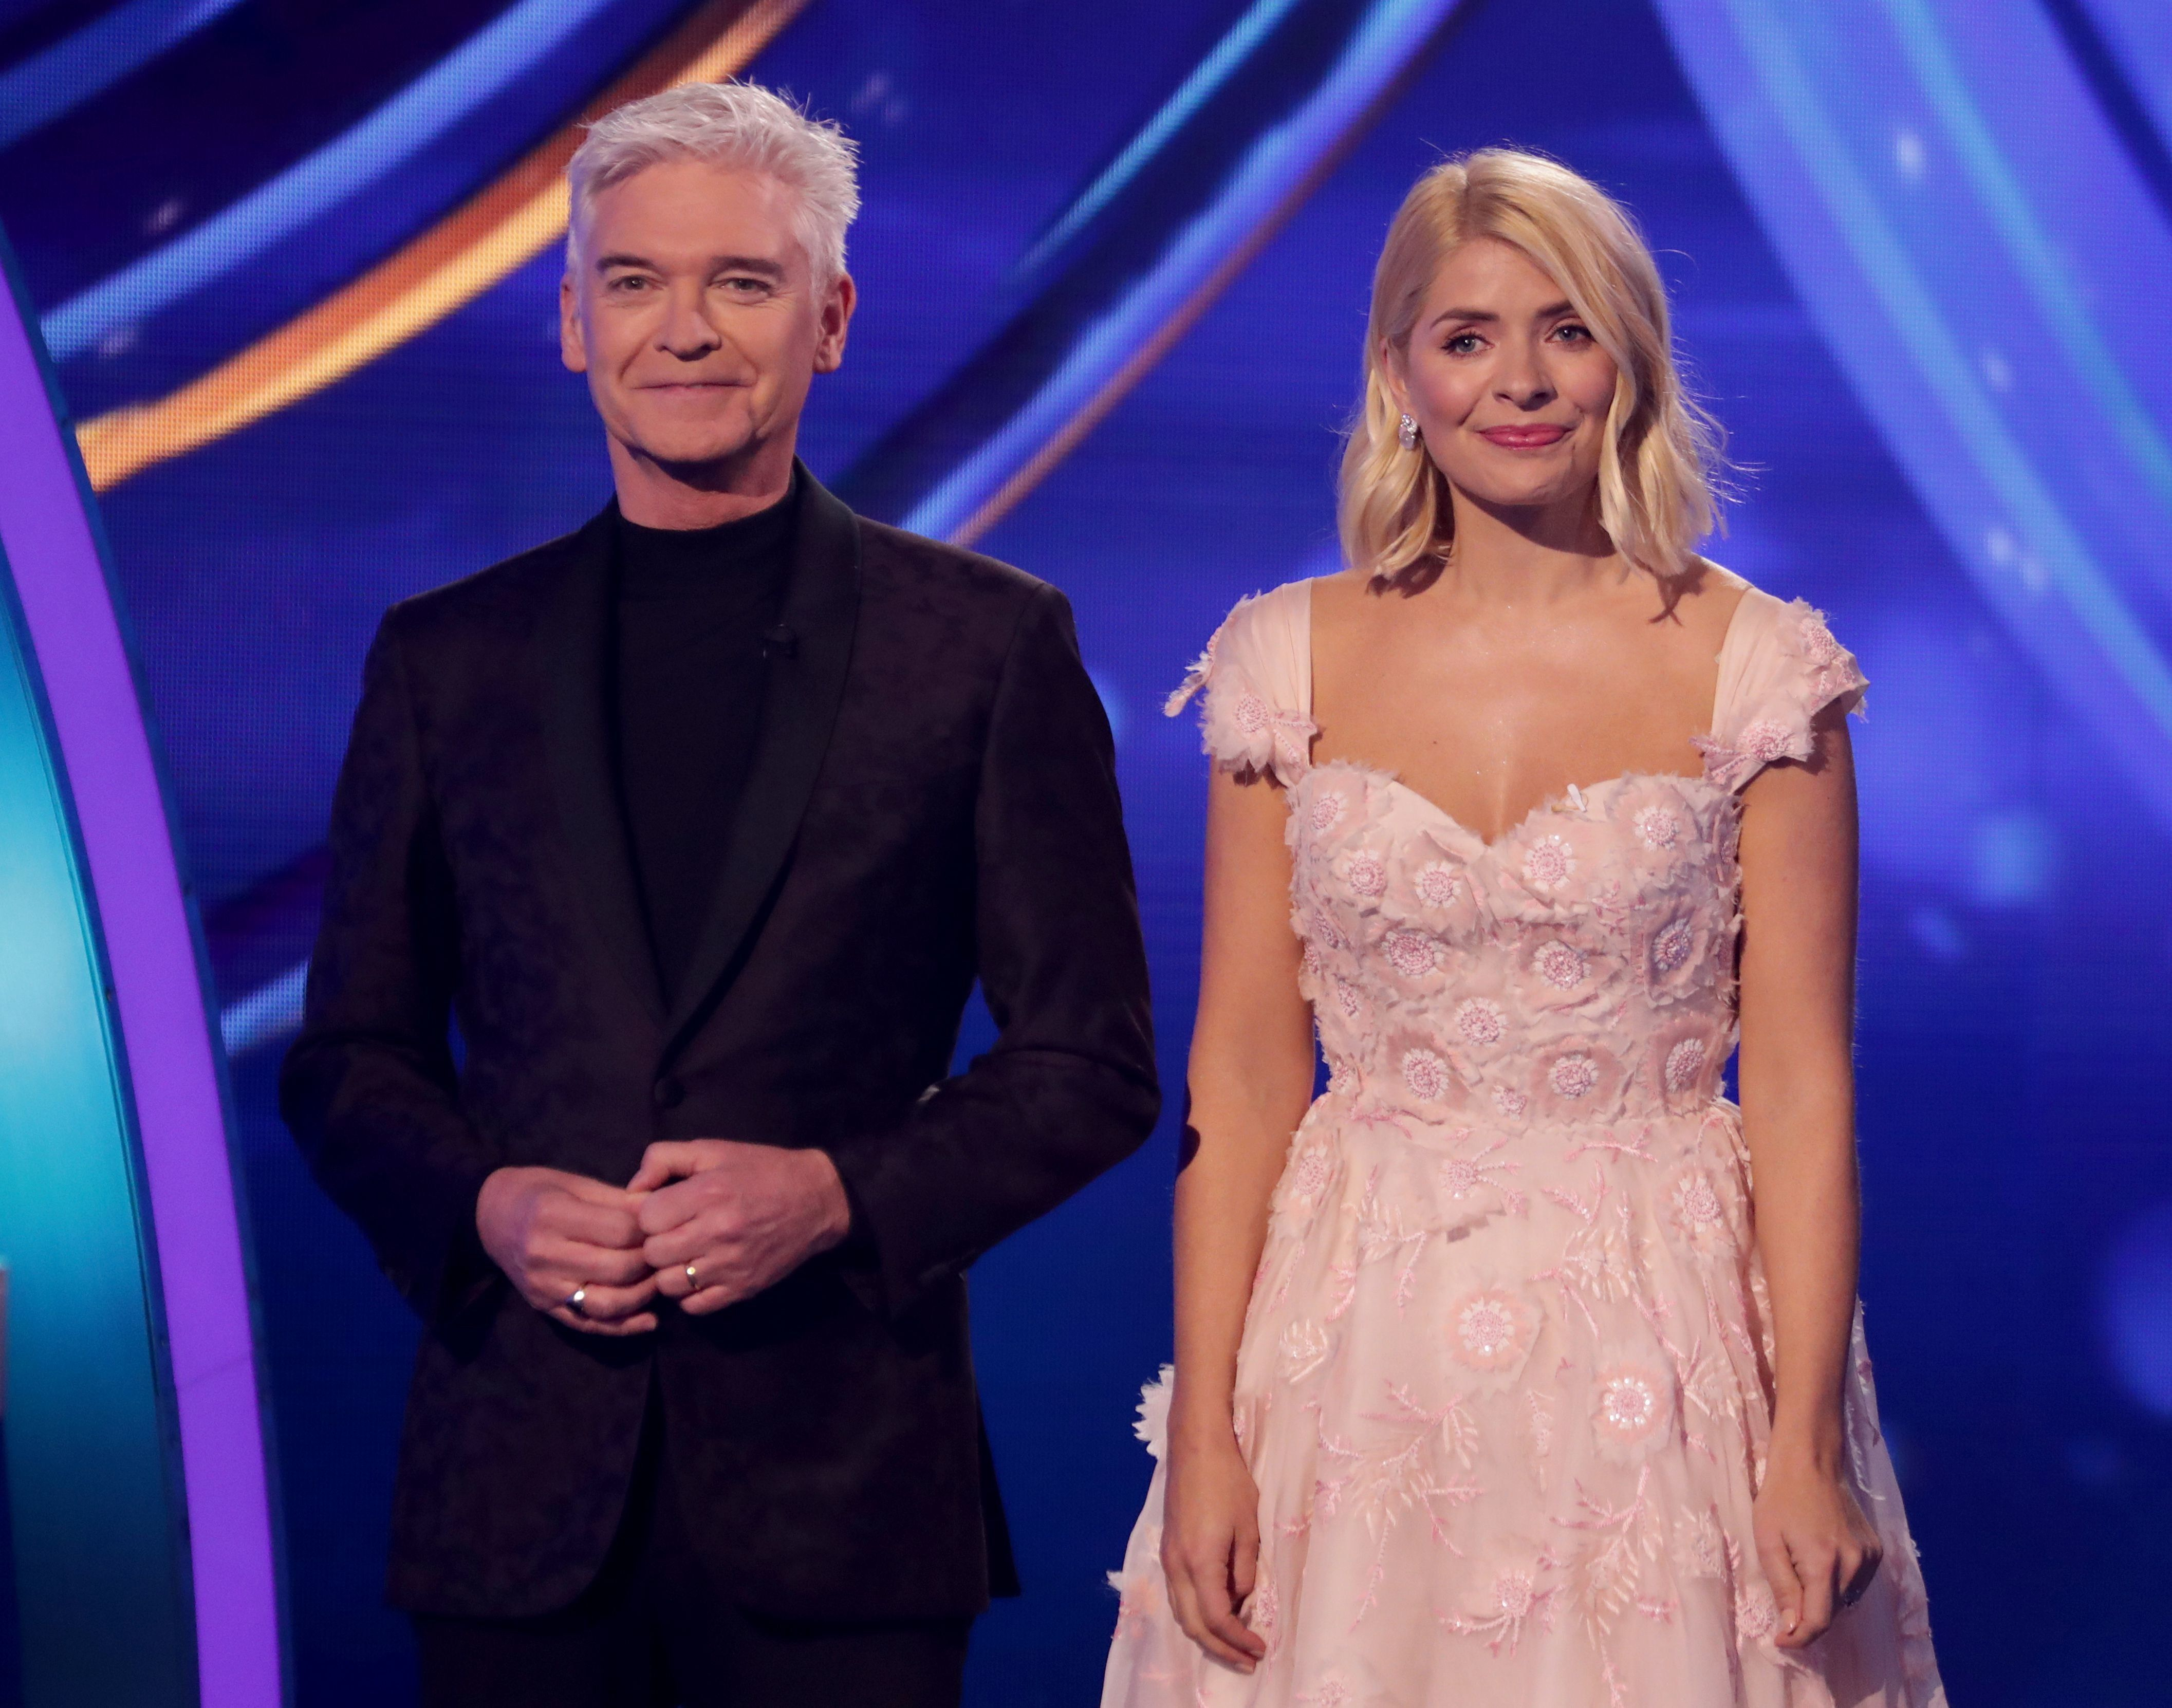 Phillip Schofield Shuts Down Dancing On Ice 'Fix' Allegations After Gemma Collins